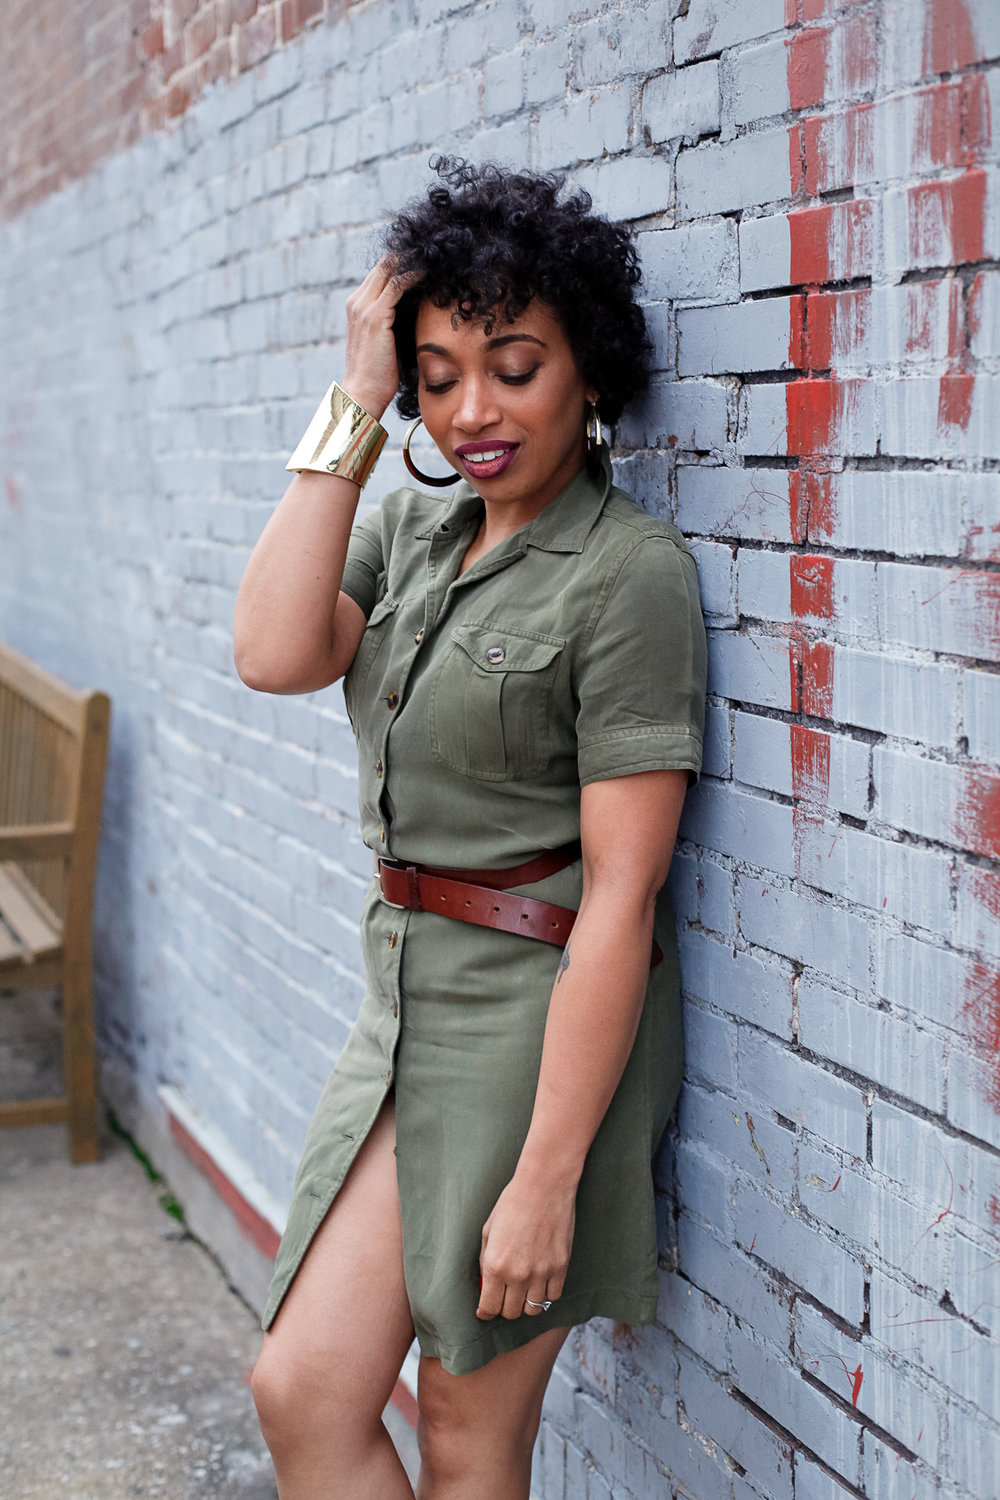 Andrea Fenise Memphis Fashion Blogger shares the Turn Your Room into An Outfit Series with a green shirt dress